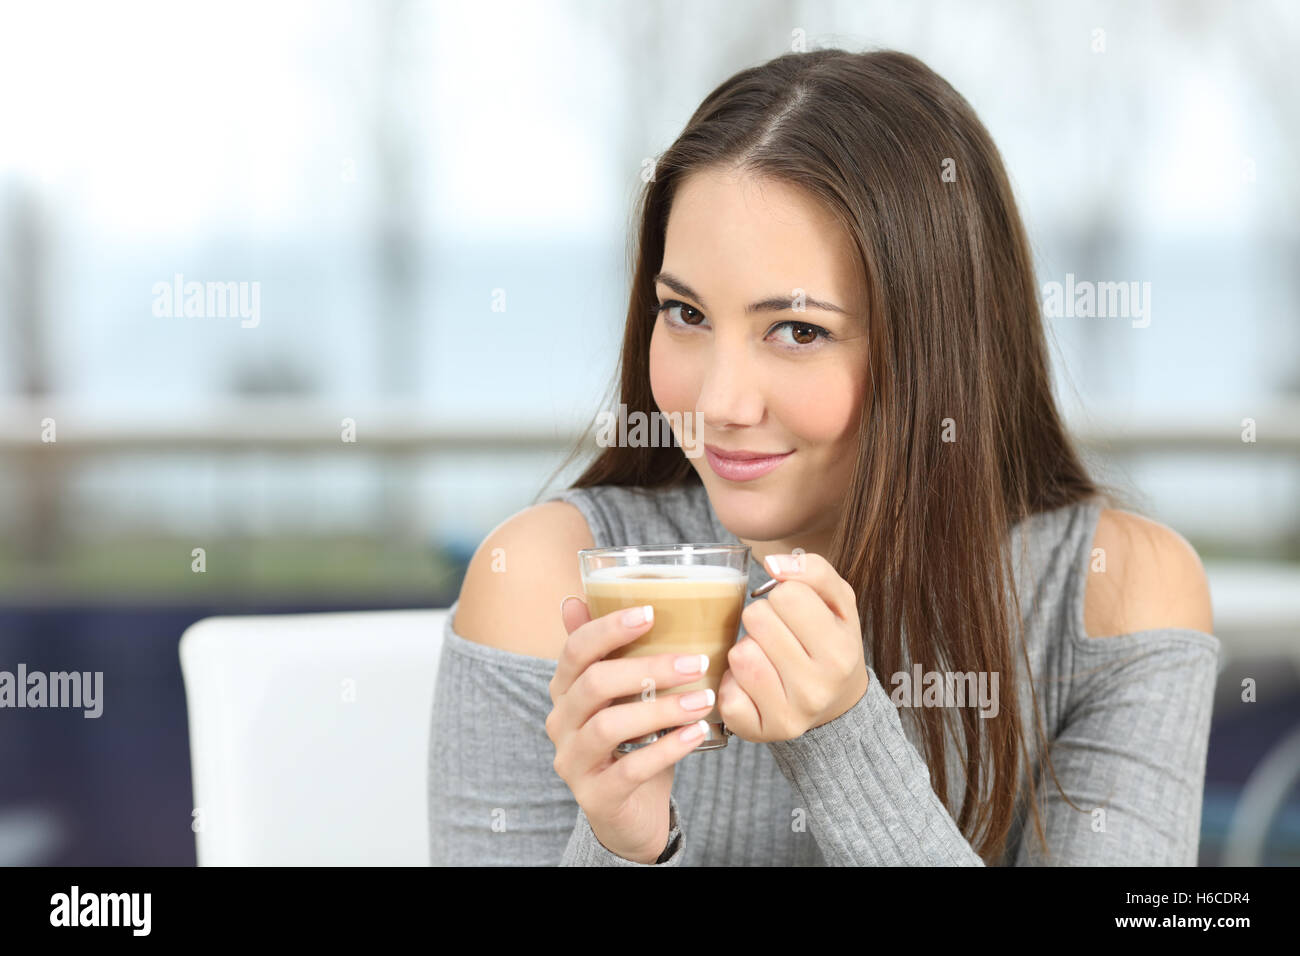 Confident woman posing looking at you holding a coffee cup in a restaurant with a window showing sea outdoors in - Stock Image